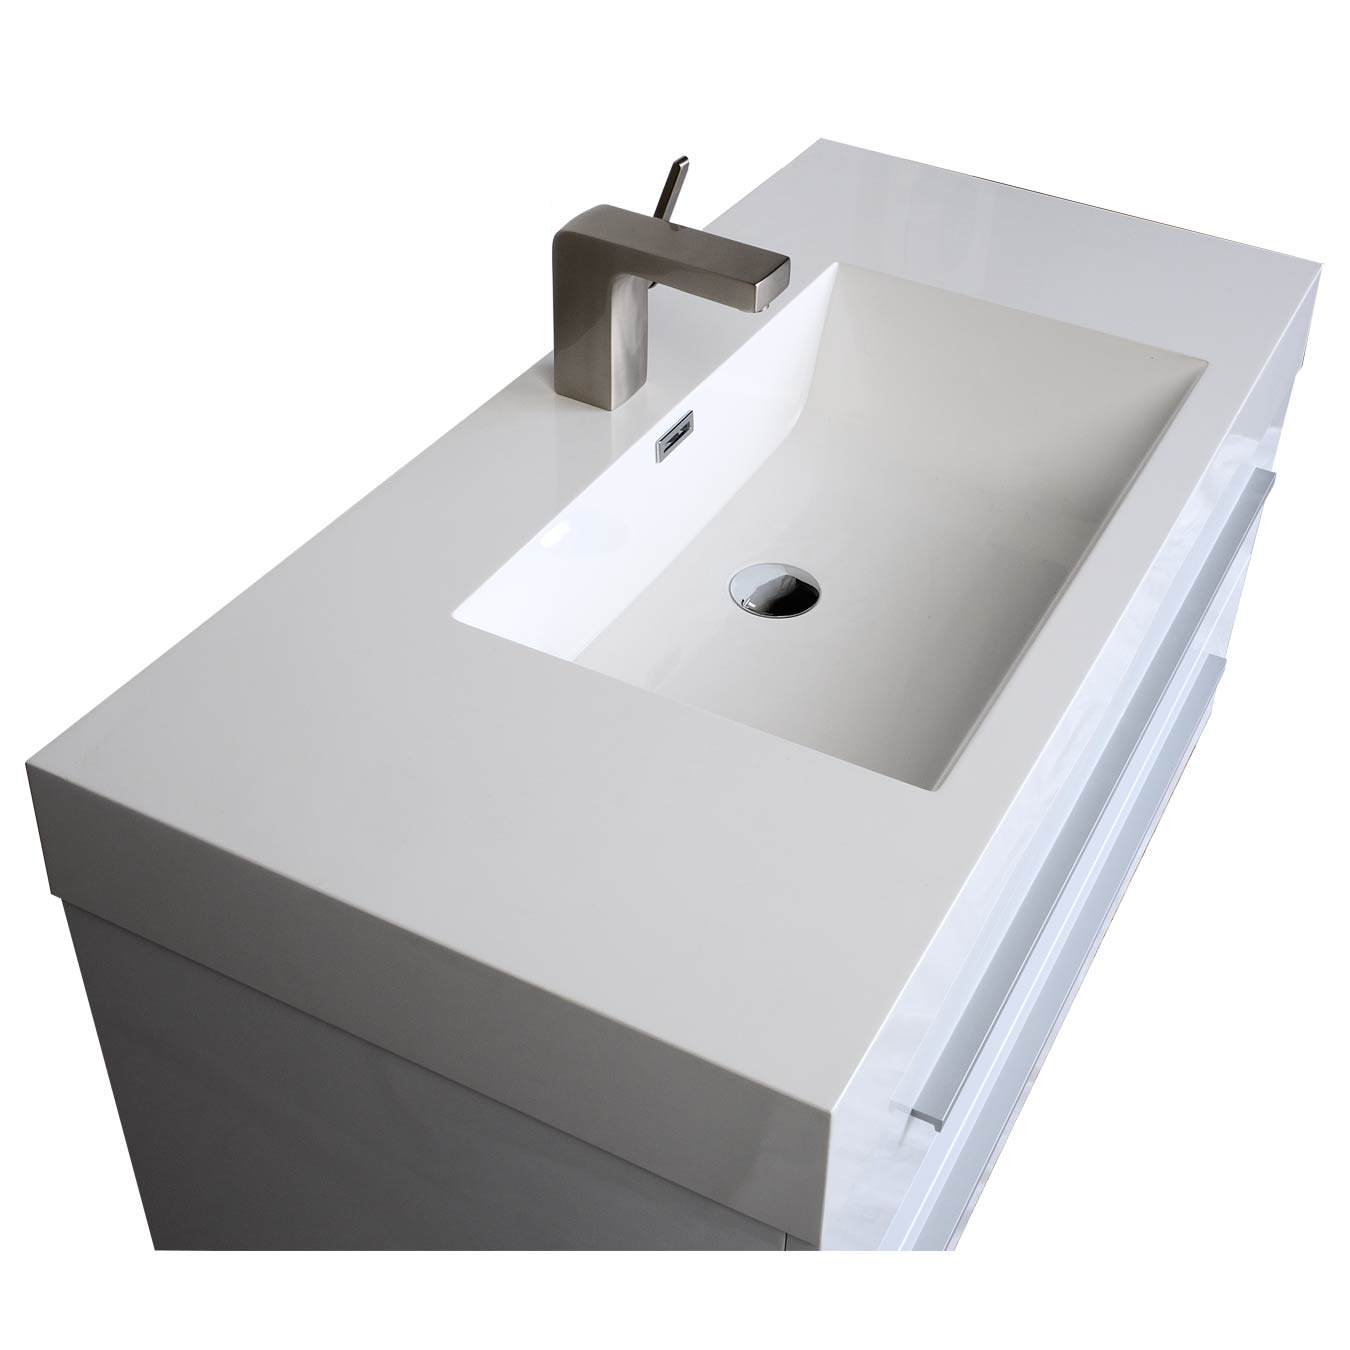 wallmount modern bathroom vanity in high gloss white tnmhgw.  in wallmount modern bathroom vanity in high gloss white tn